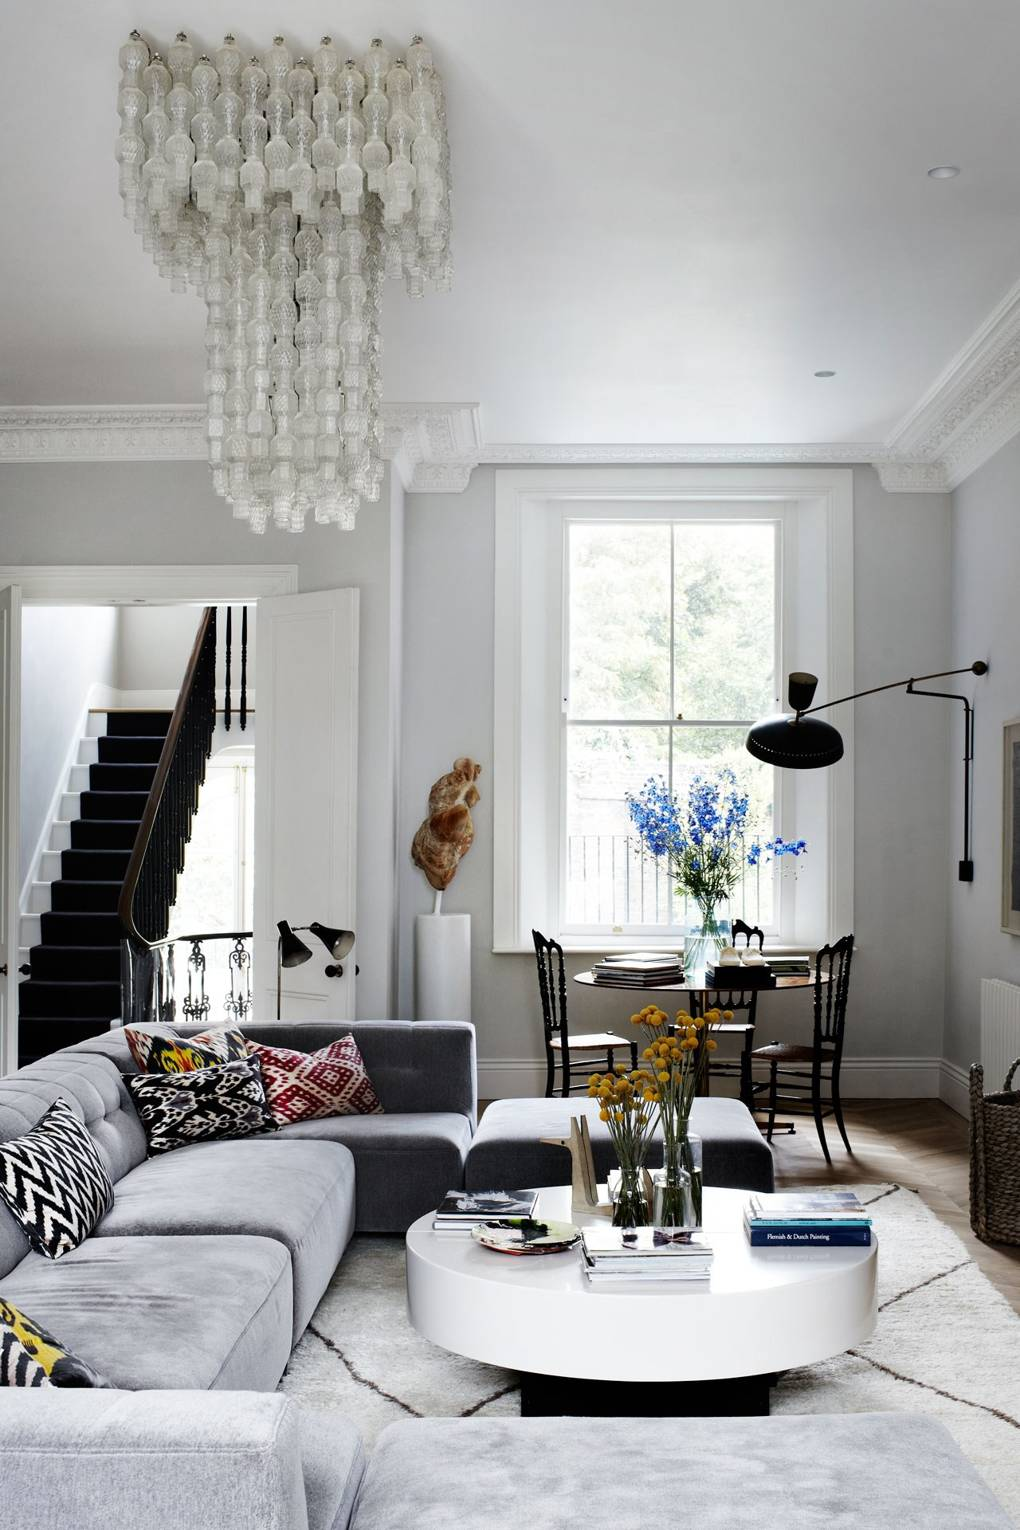 8 Simple Ways To Successfully Mix Decor Styles